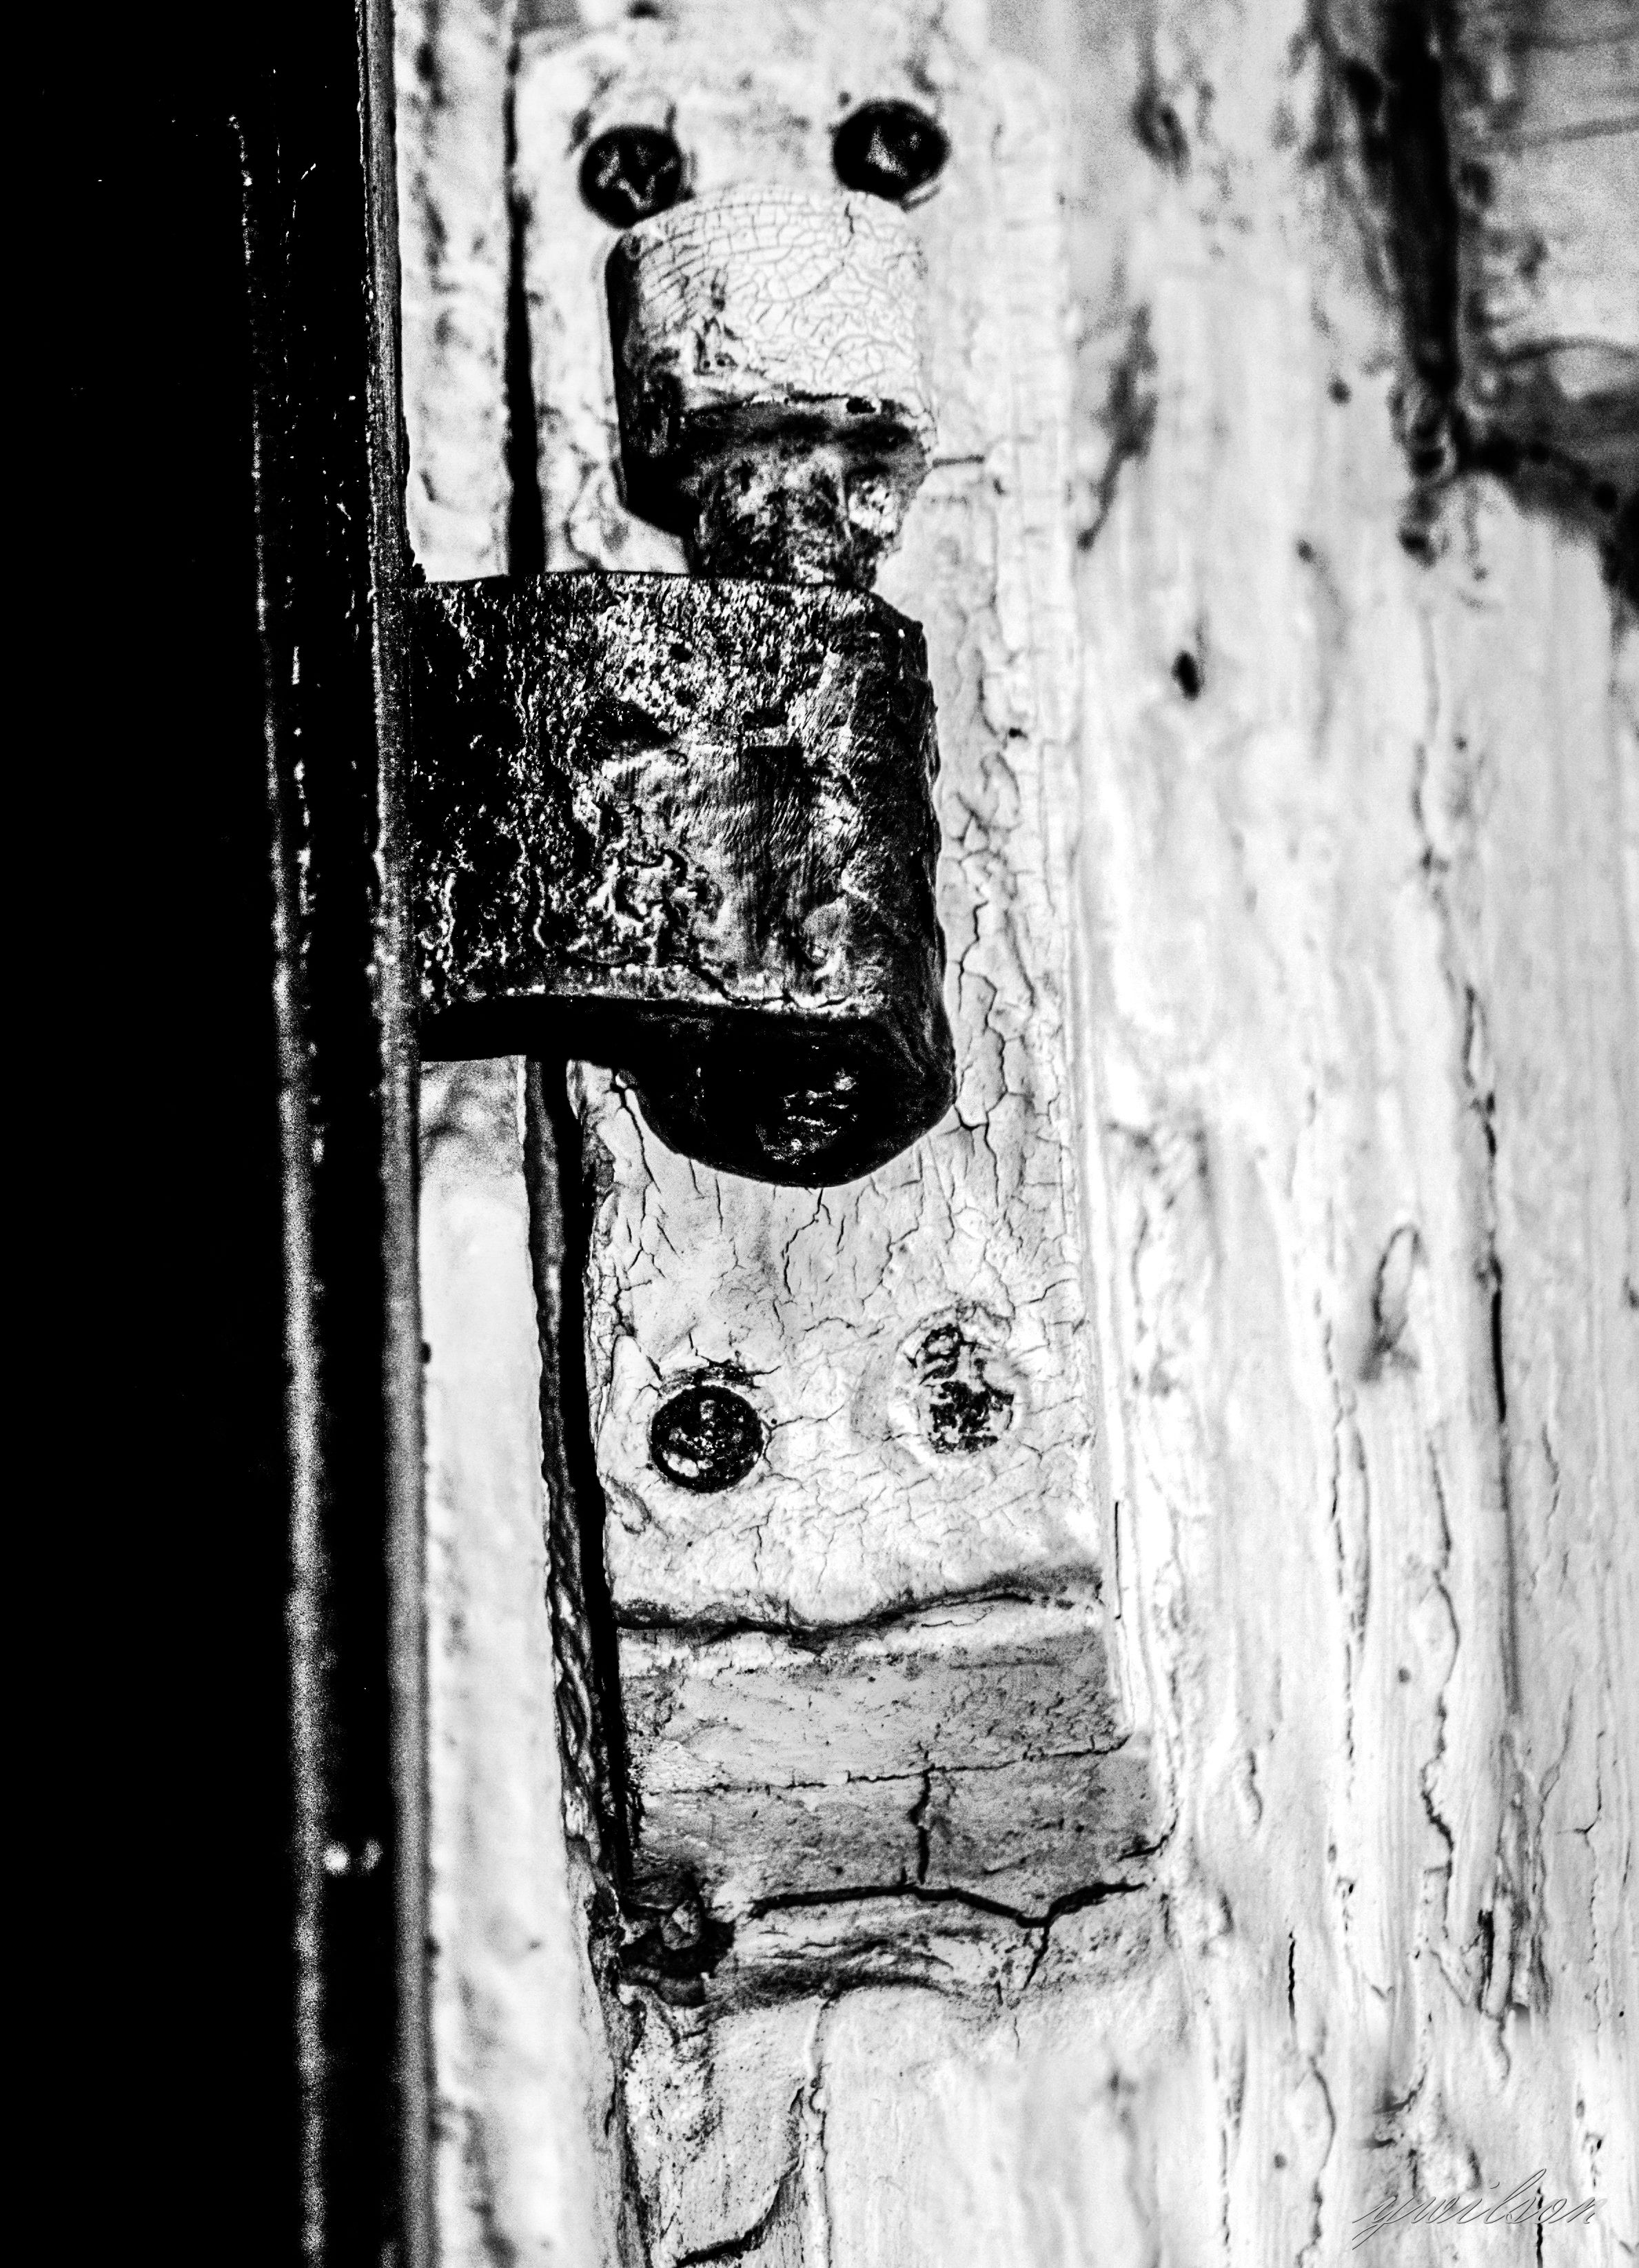 Black white charleston hinge sc how to take photos landscape photography